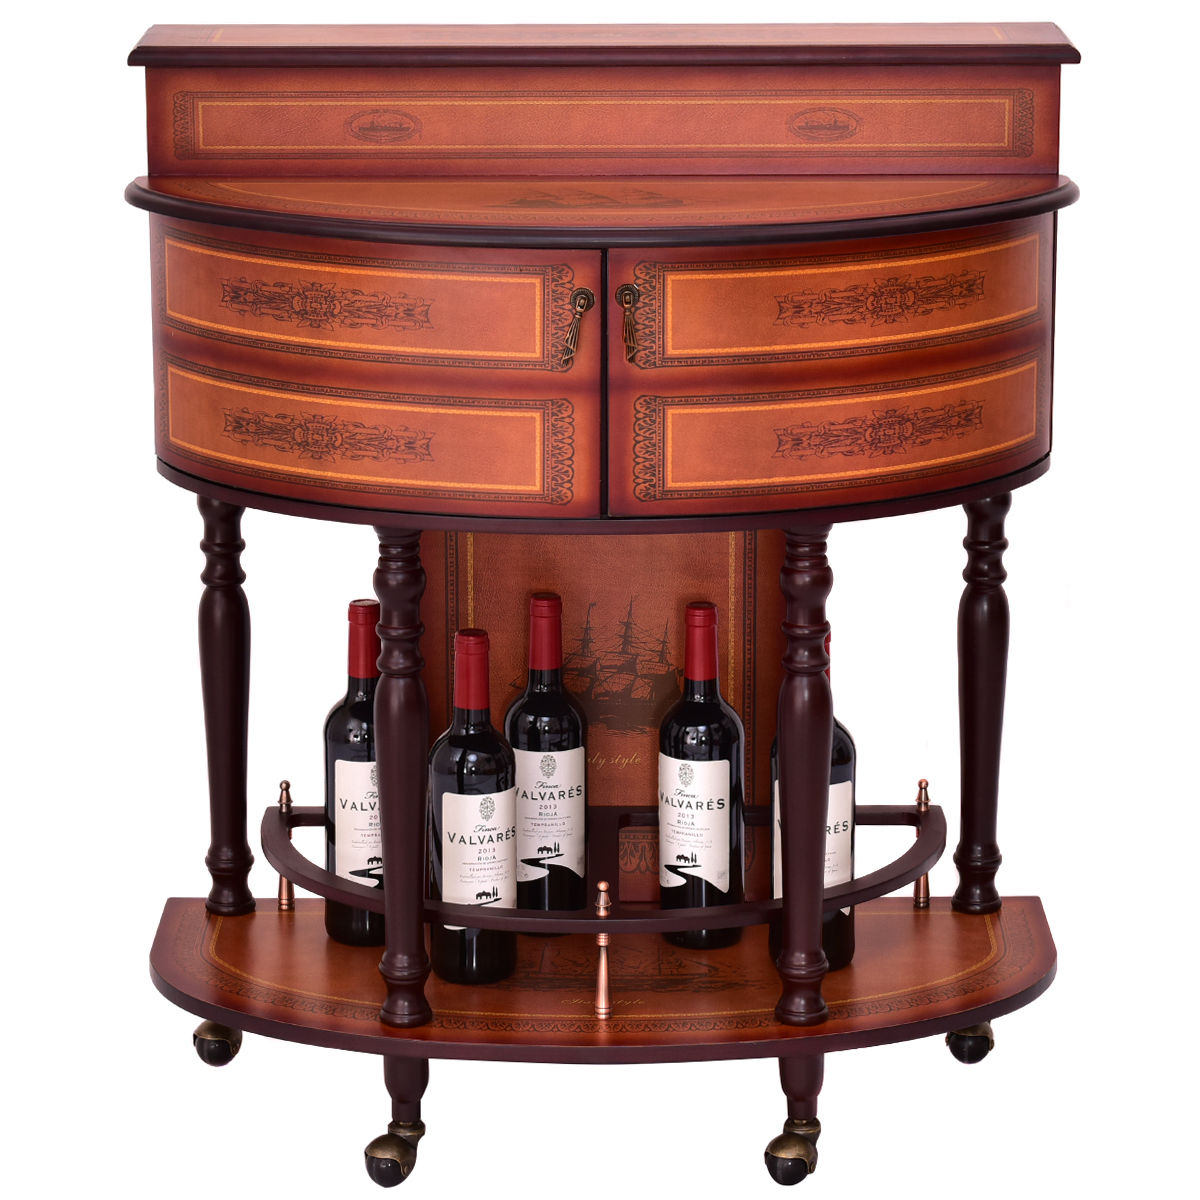 Goplus Rolling Vintage Wine Cabinet Bar Stand Wood Storage Holder Liquor Bottle Shelf  sc 1 st  Walmart & Liquor Cabinets